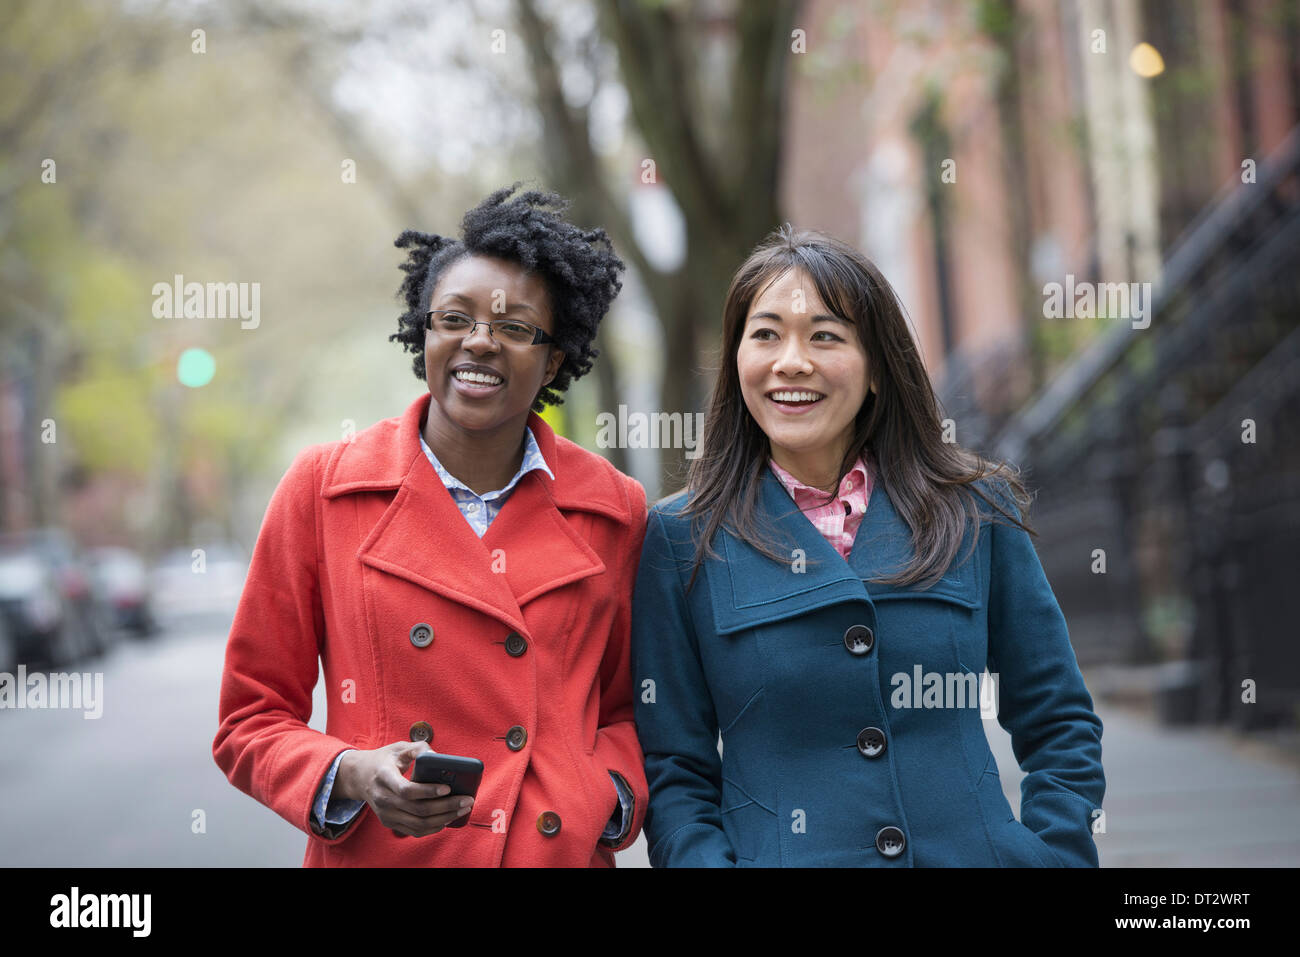 Two women side by side on a city street One holding a cell phone - Stock Image